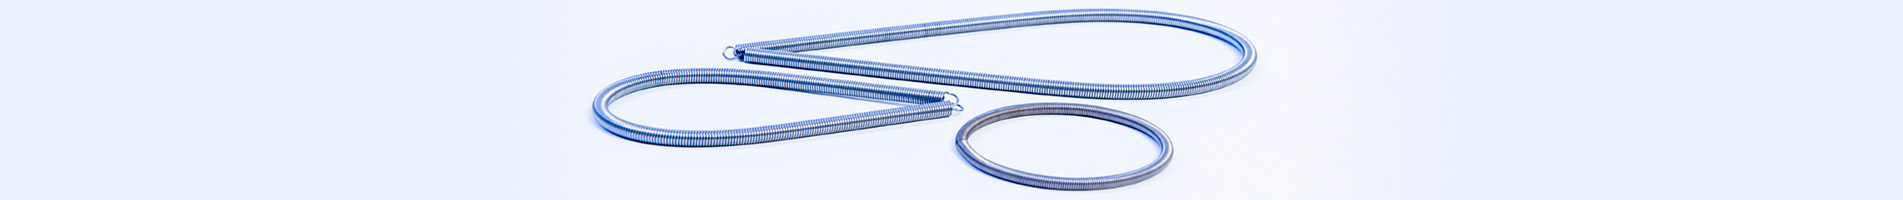 three garter springs in a banner image